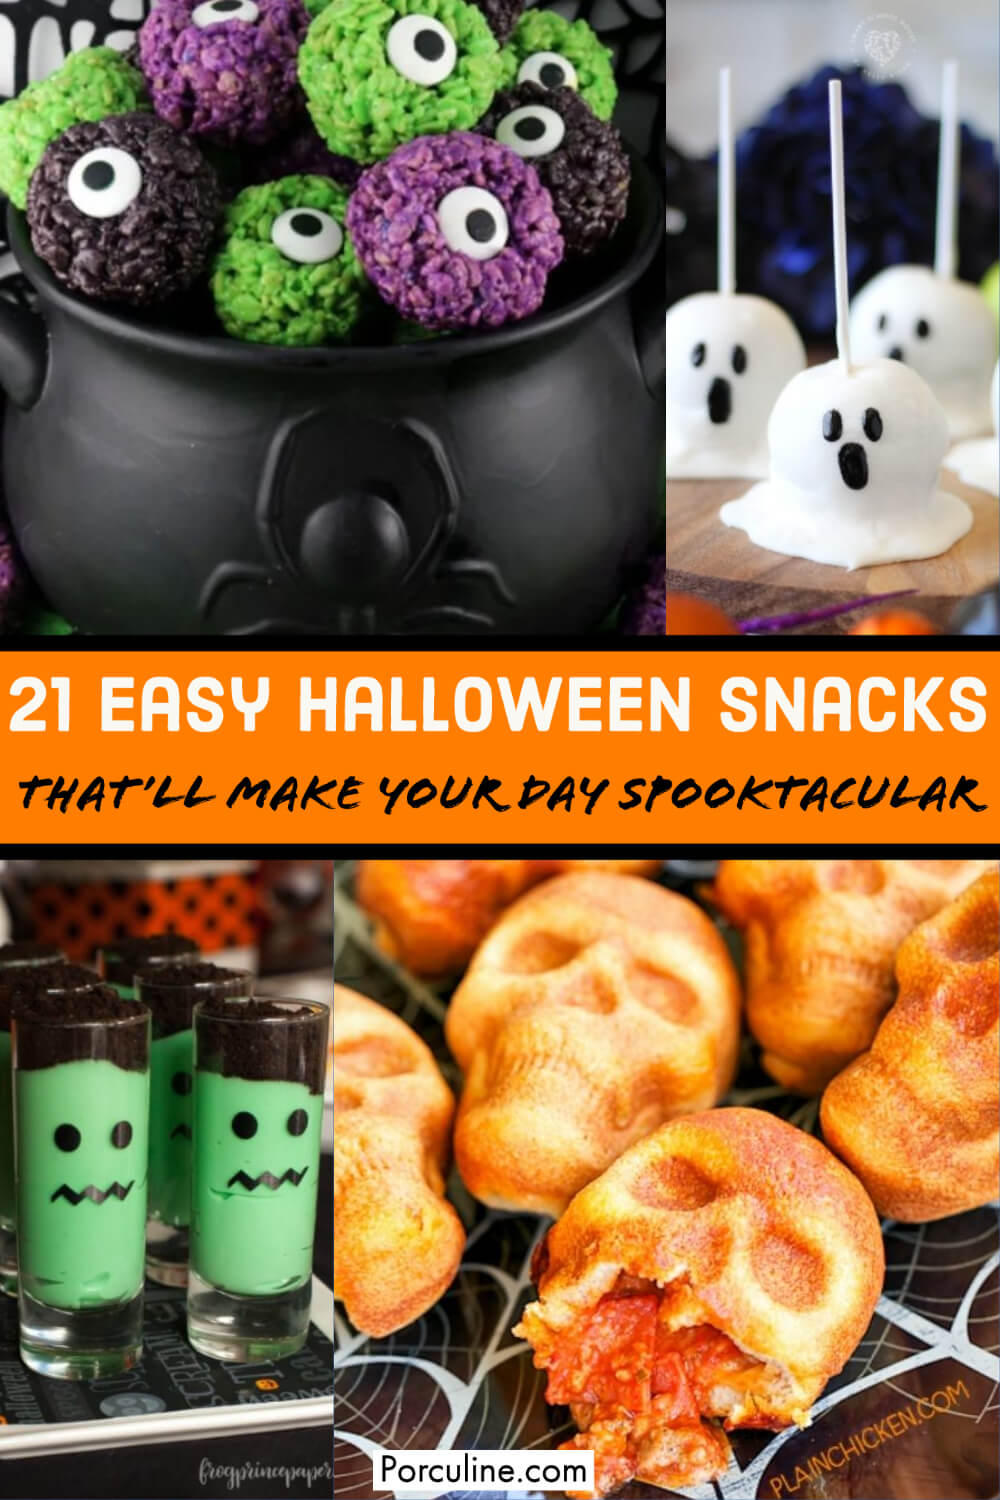 21 Easy Halloween Snack That'll Make Your Day Spooktacular - Porculine.com